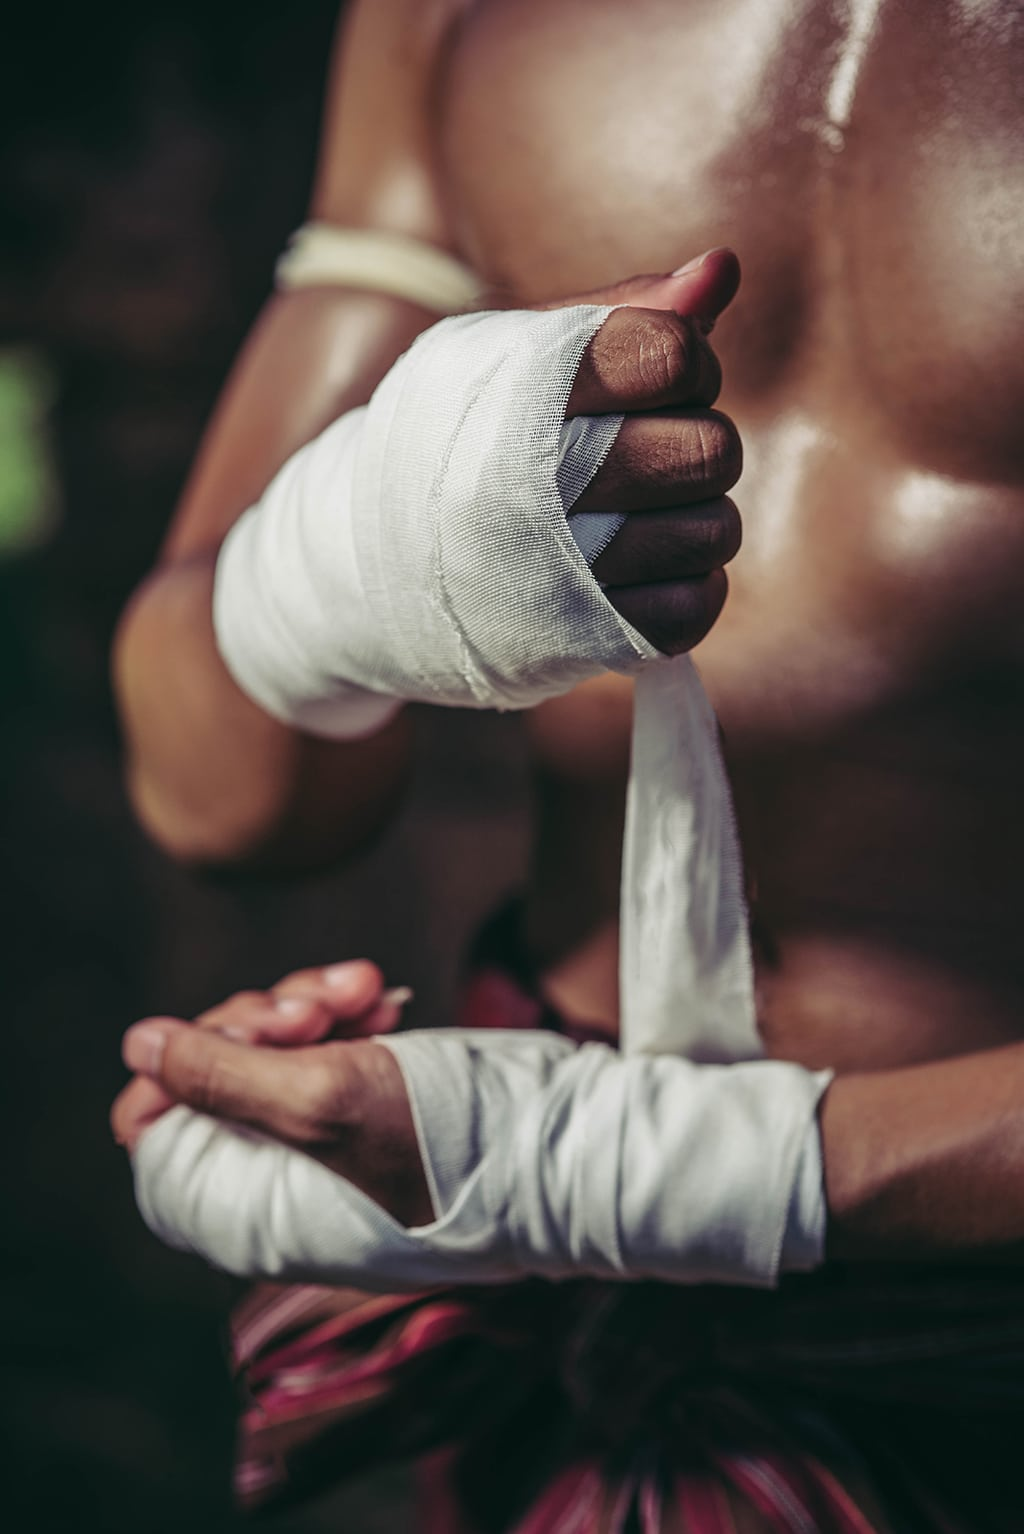 Boxer preparing fight with tape around his hands